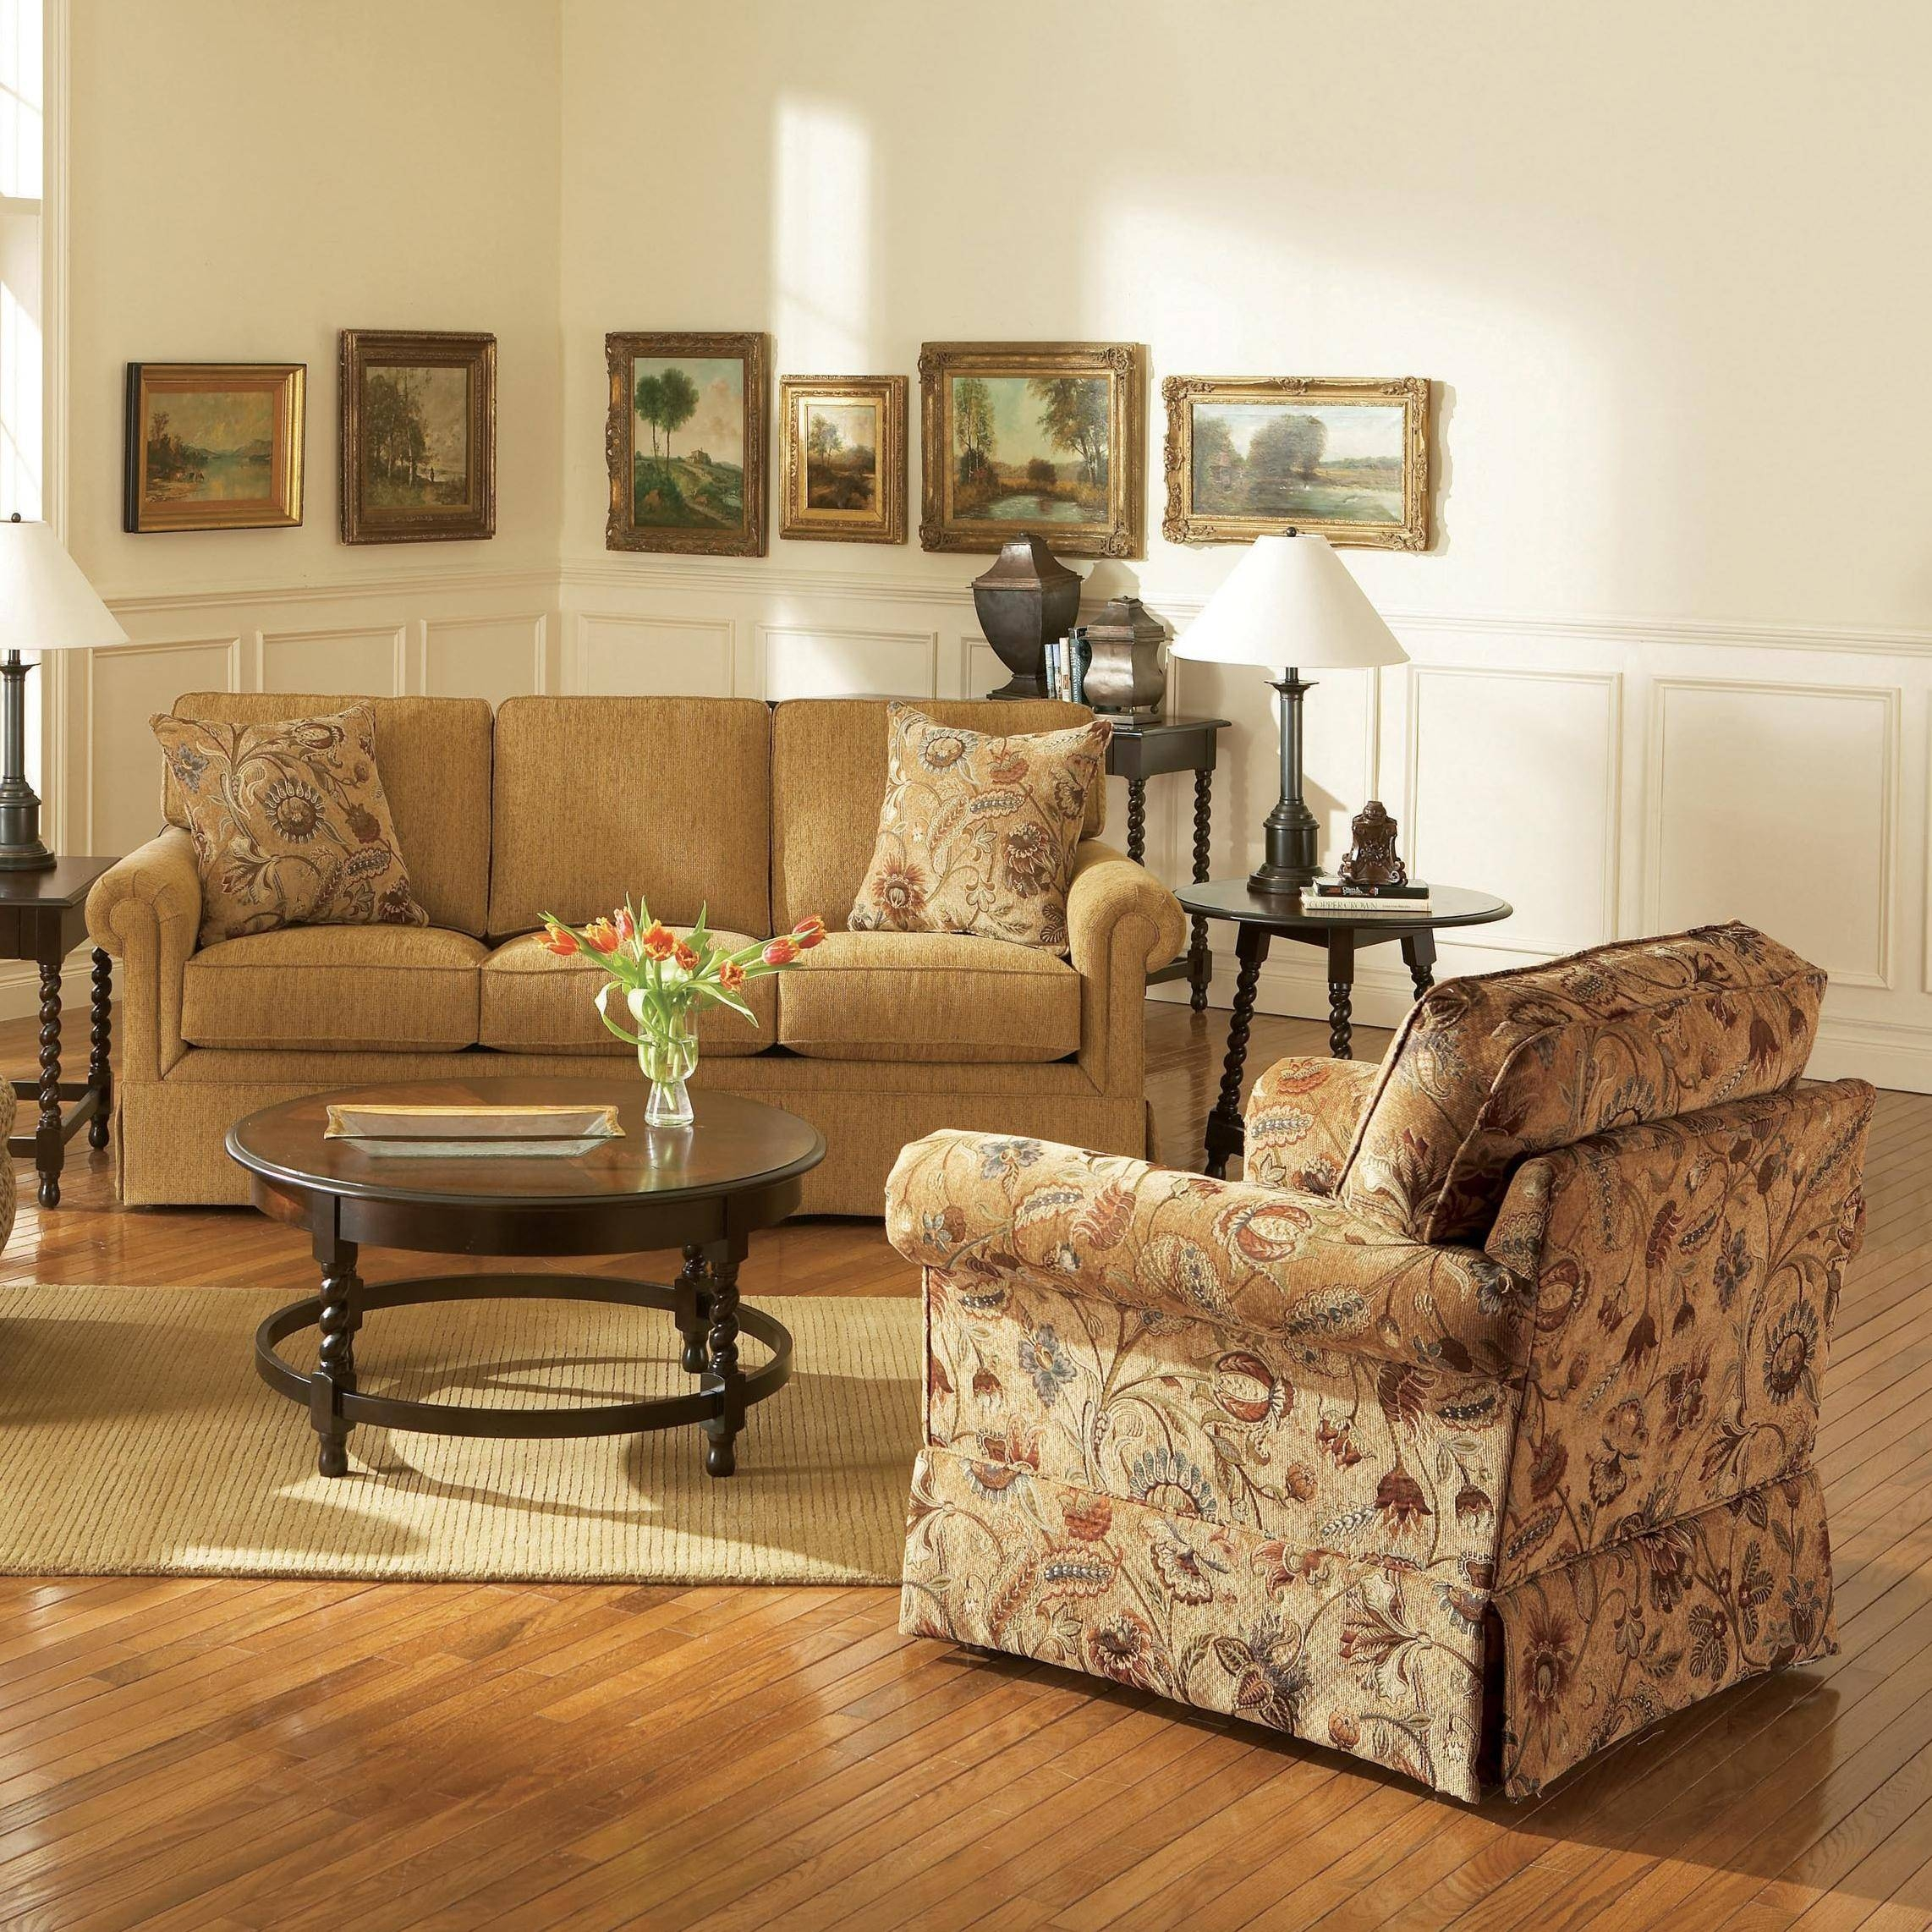 Broyhill Furniture Audrey Chair And Ottoman With Skirt   Wayside Intended For Broyhill Sofas (Photo 13 of 15)